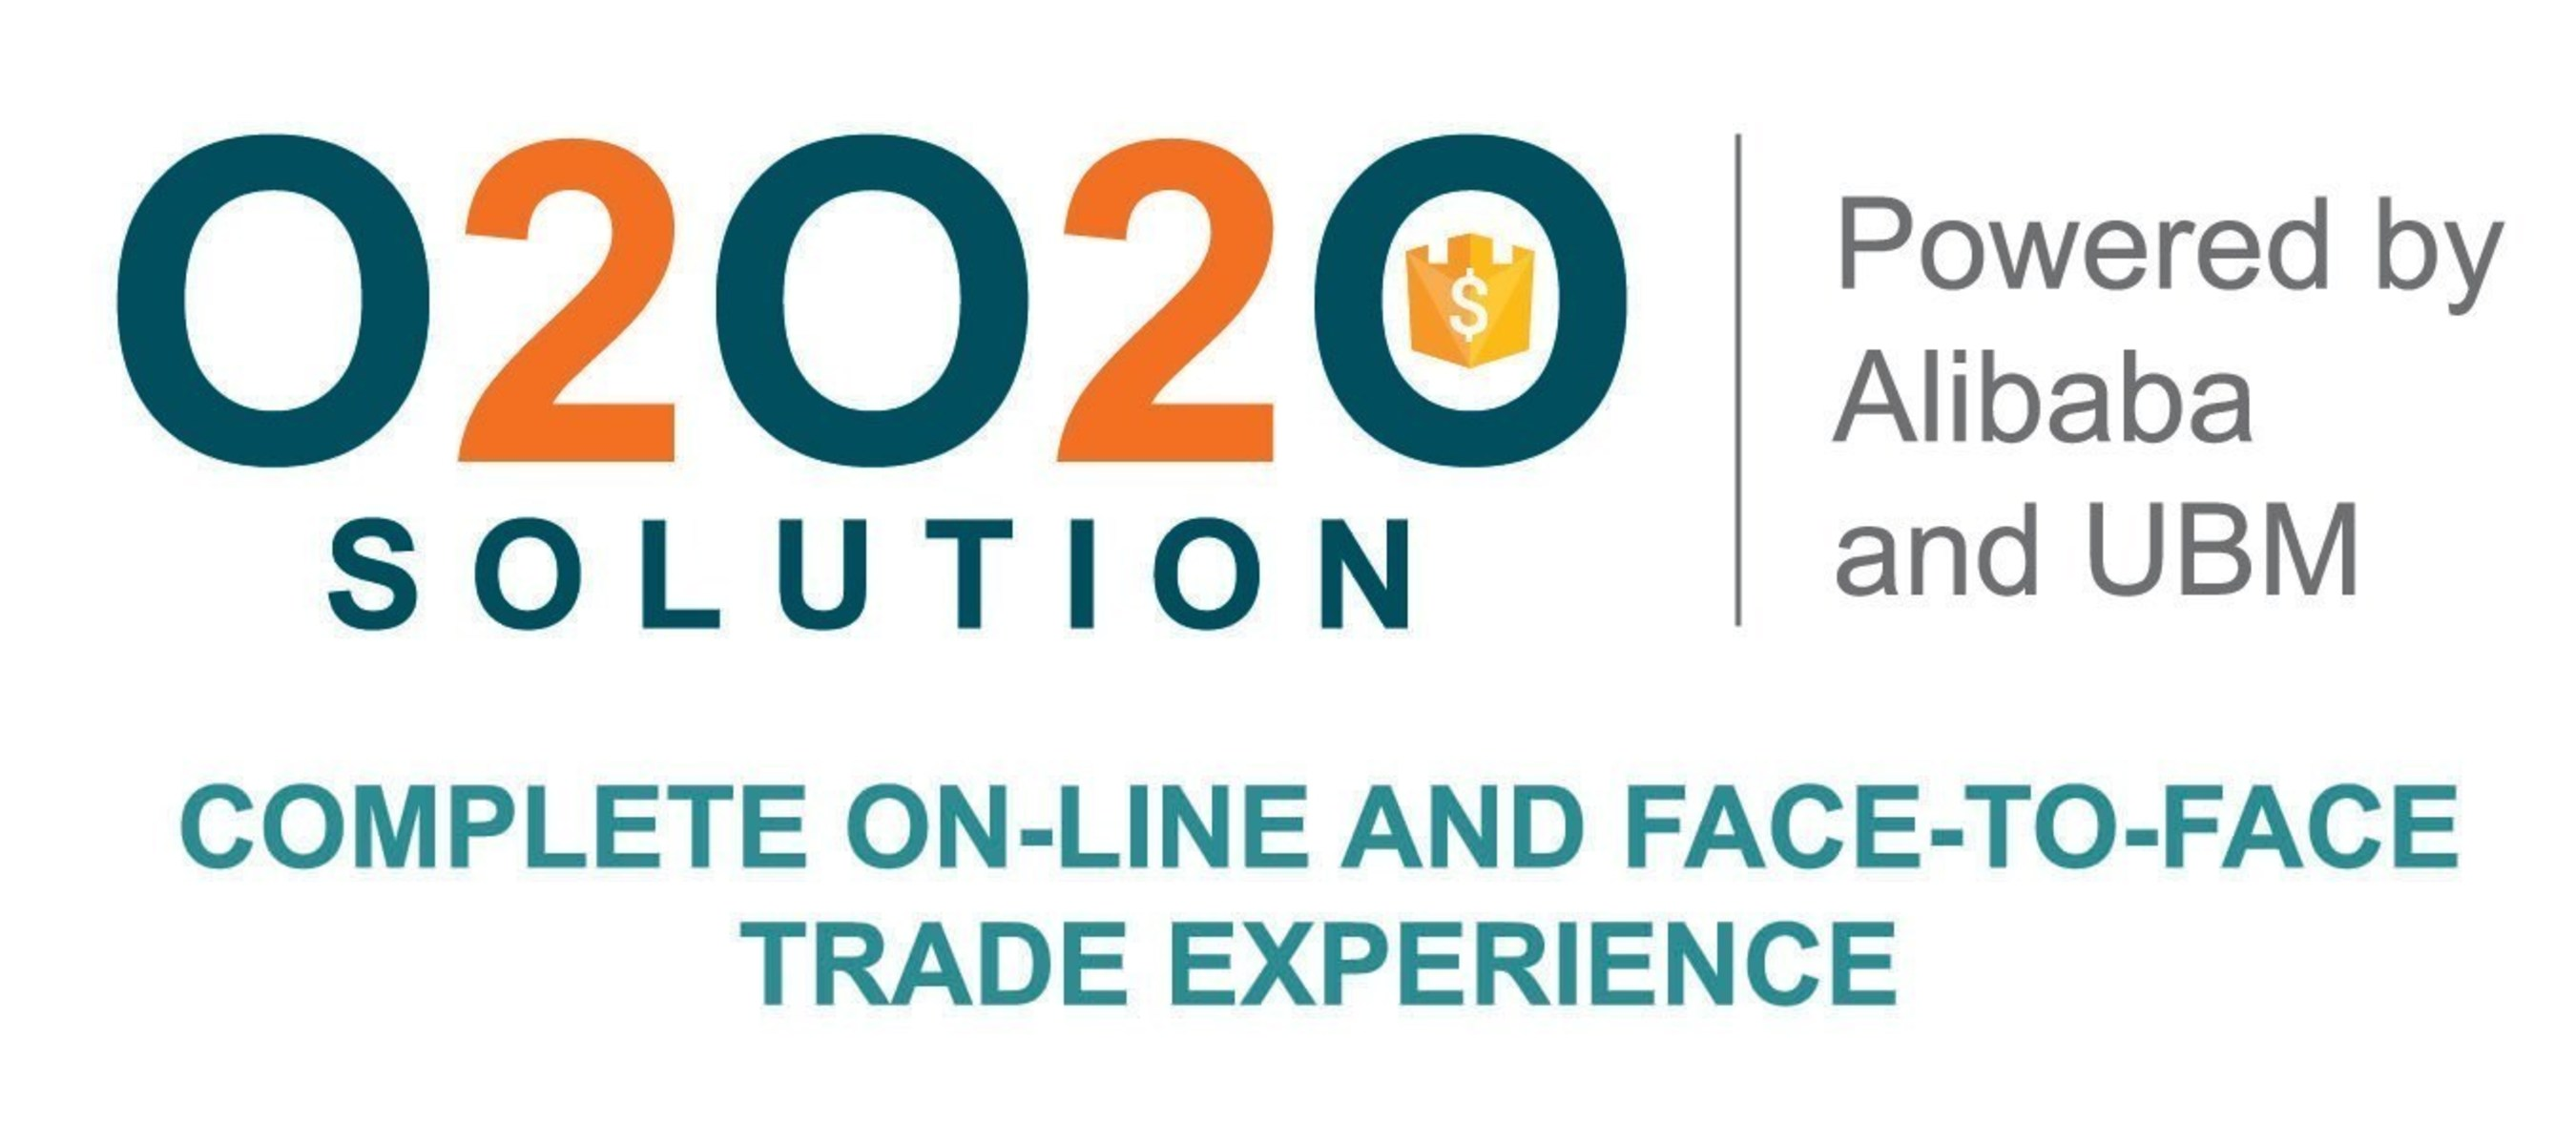 SIGN & LED CHINA 2016 Exposition Expands Trade Sourcing Experience Online and Offline